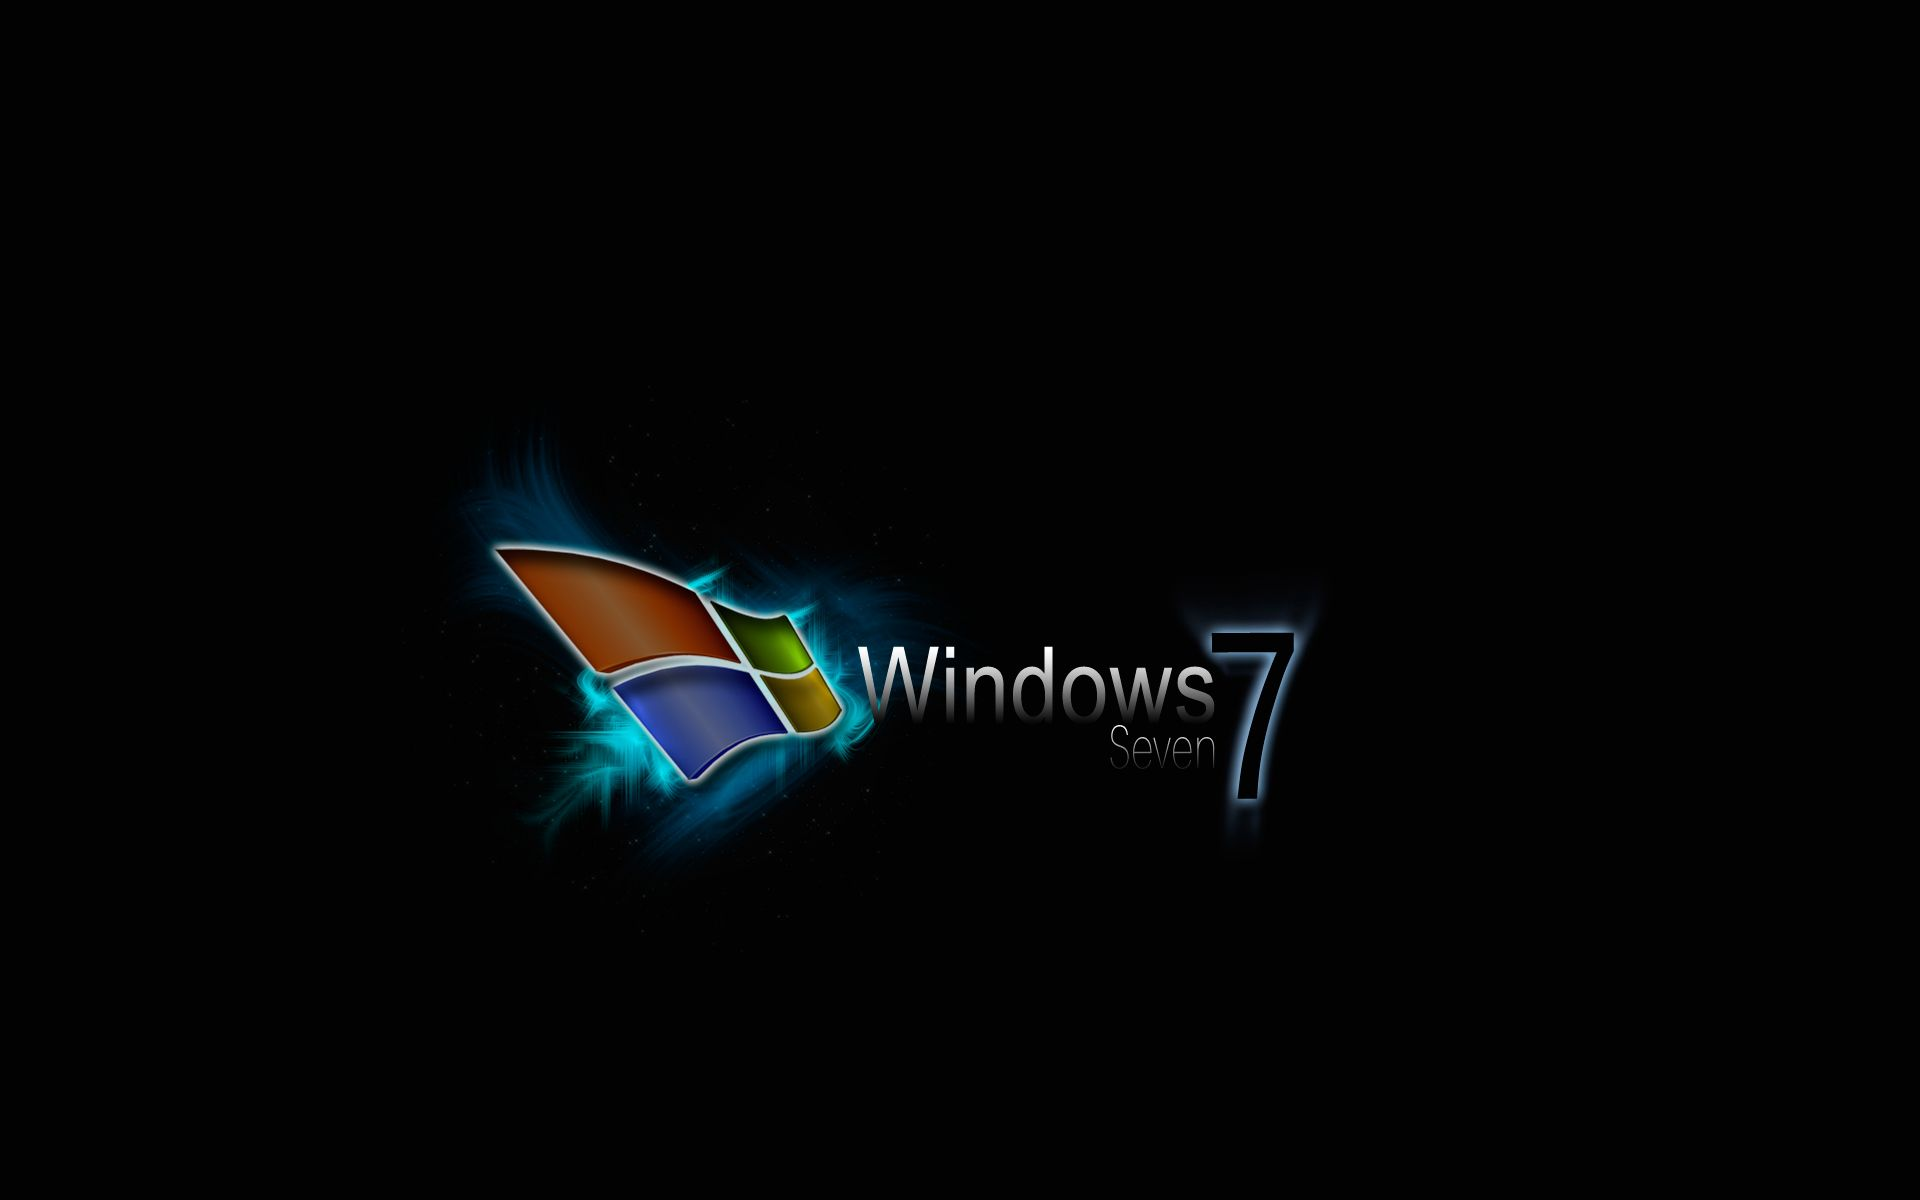 Hd wallpaper windows 7 - Are You Looking For Windows 7 Hd Wallpapers Download Latest Collection Of Windows 7 Hd